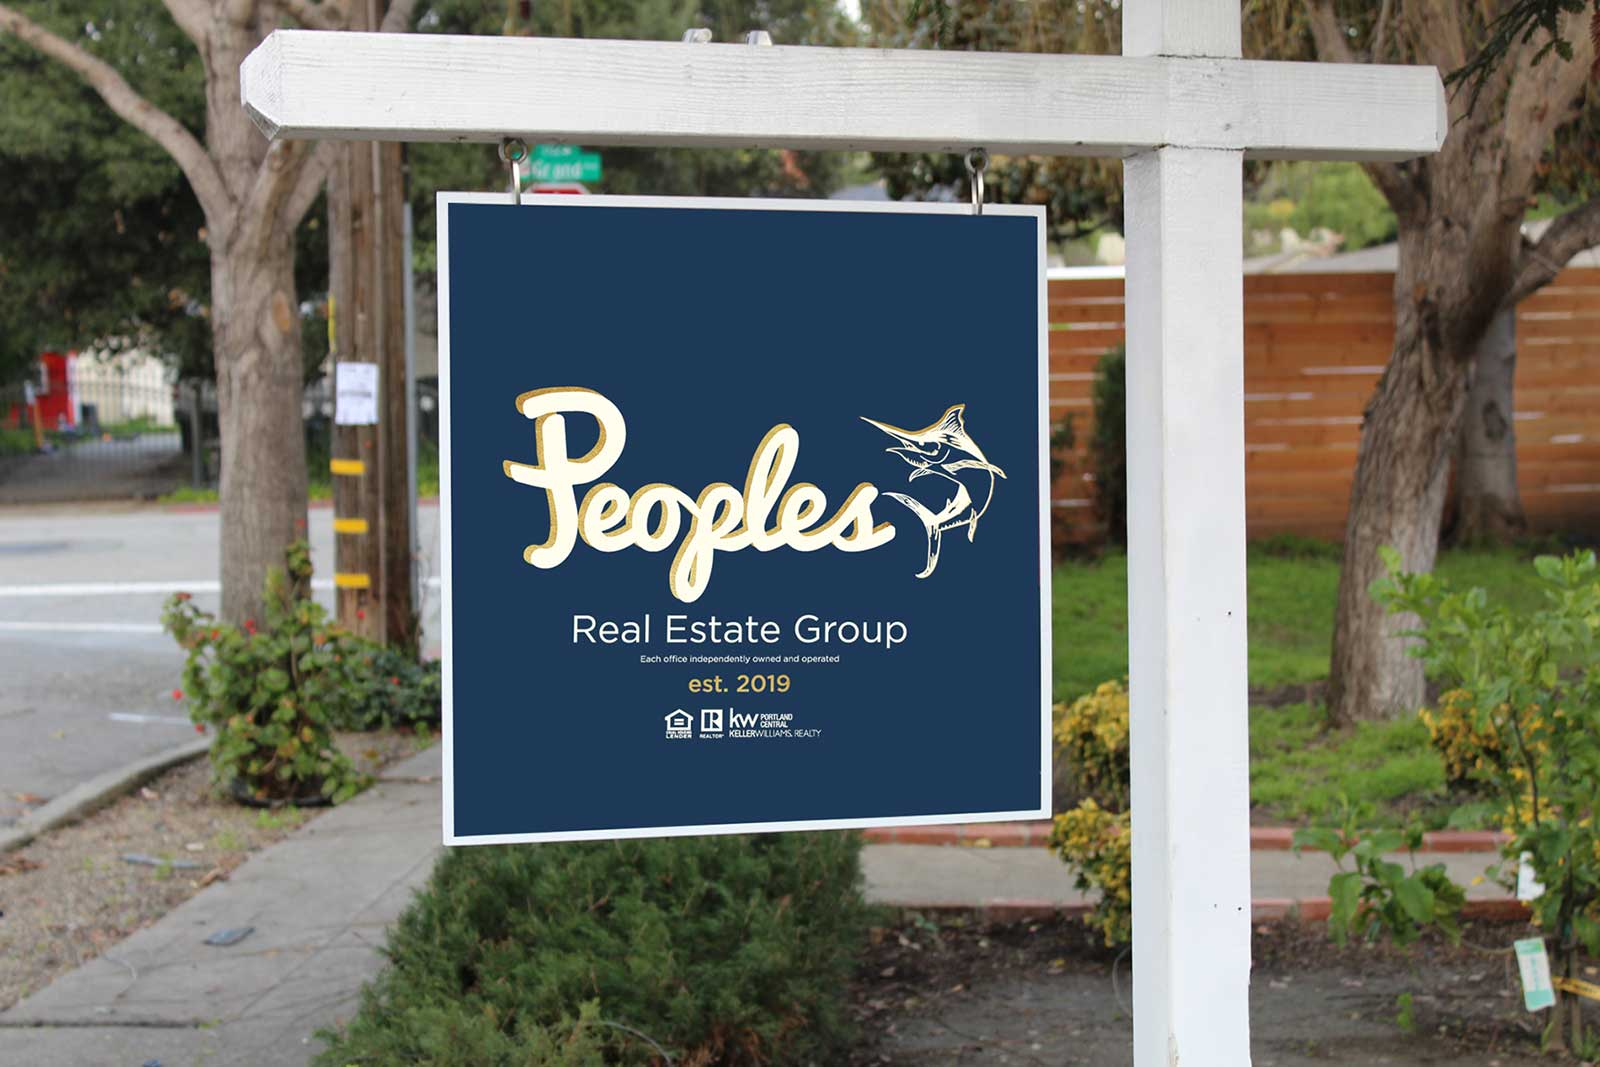 Peoples Real Estate property sign